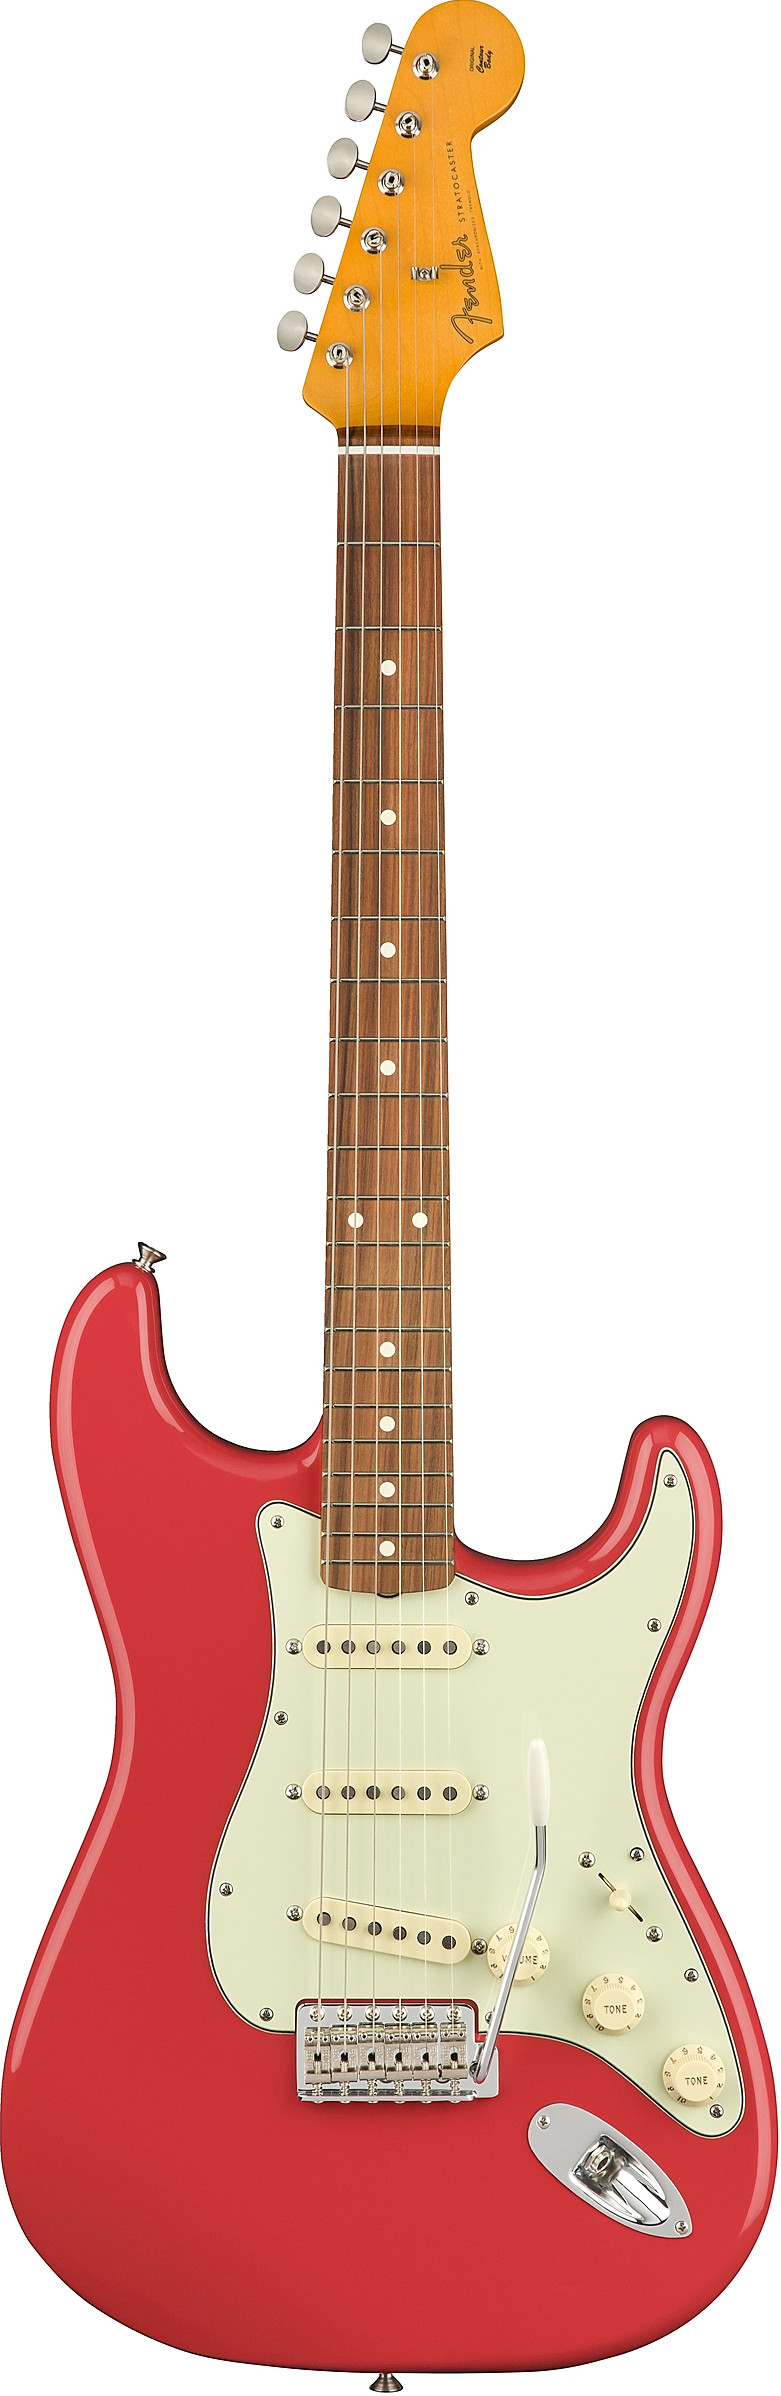 fender classic series 60s stratocaster lacquer review. Black Bedroom Furniture Sets. Home Design Ideas